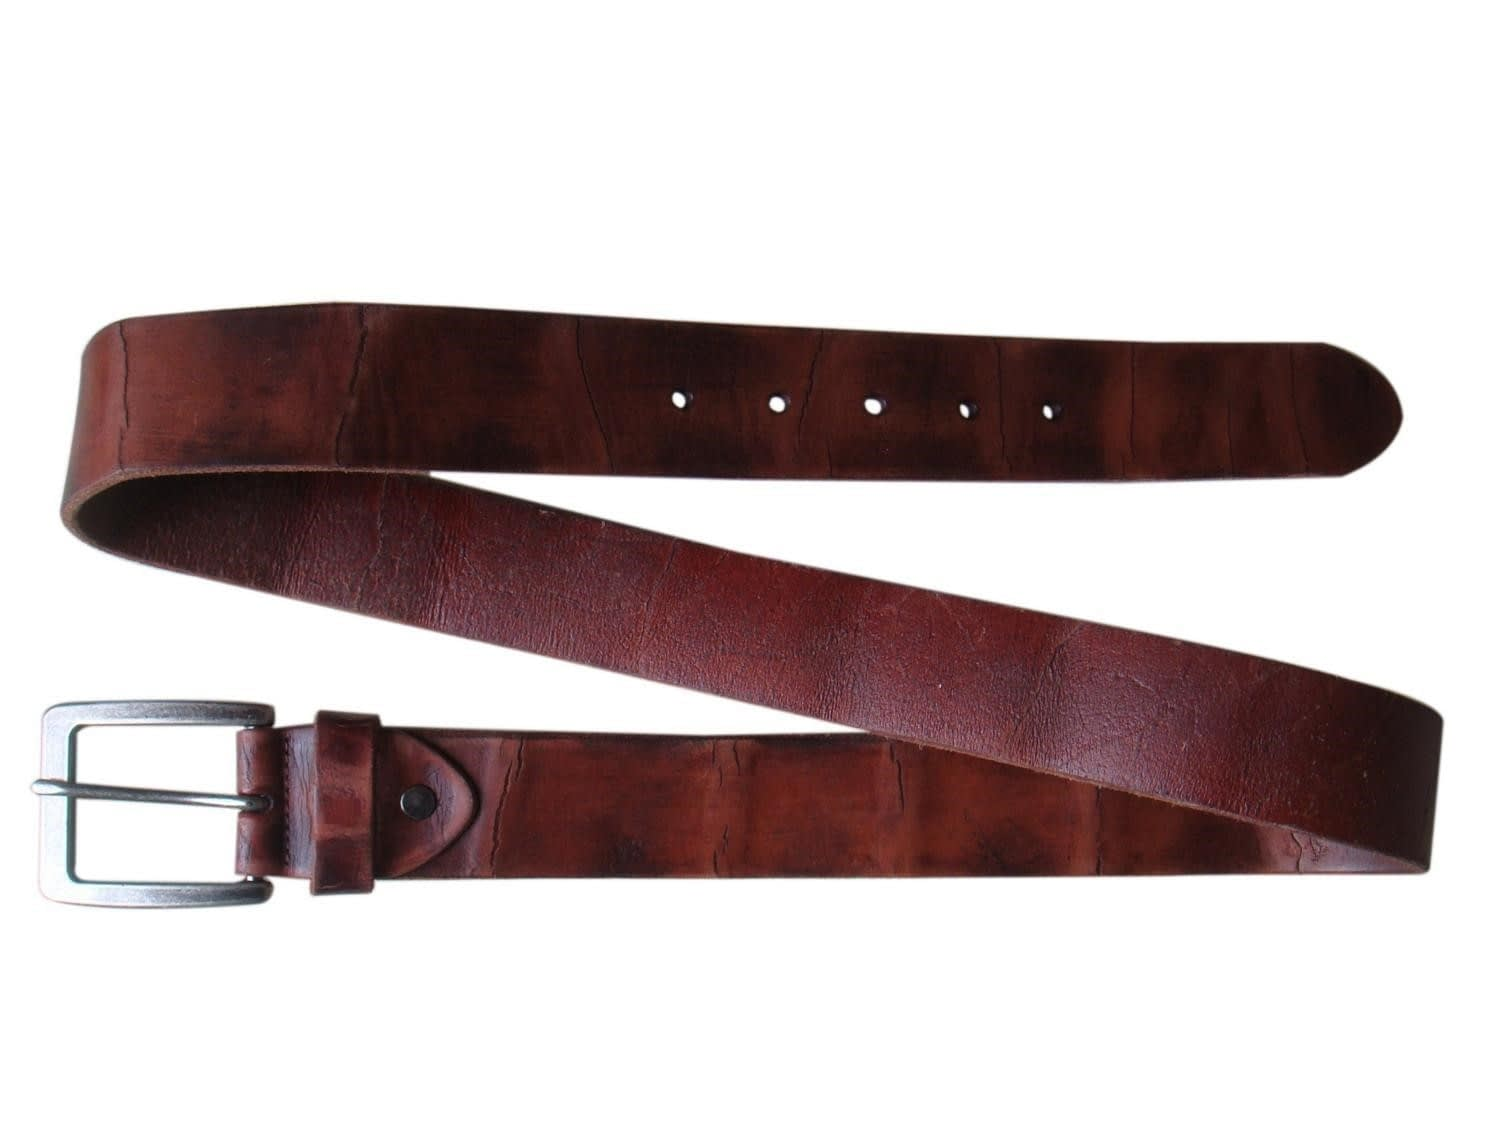 Worn Leather Belt